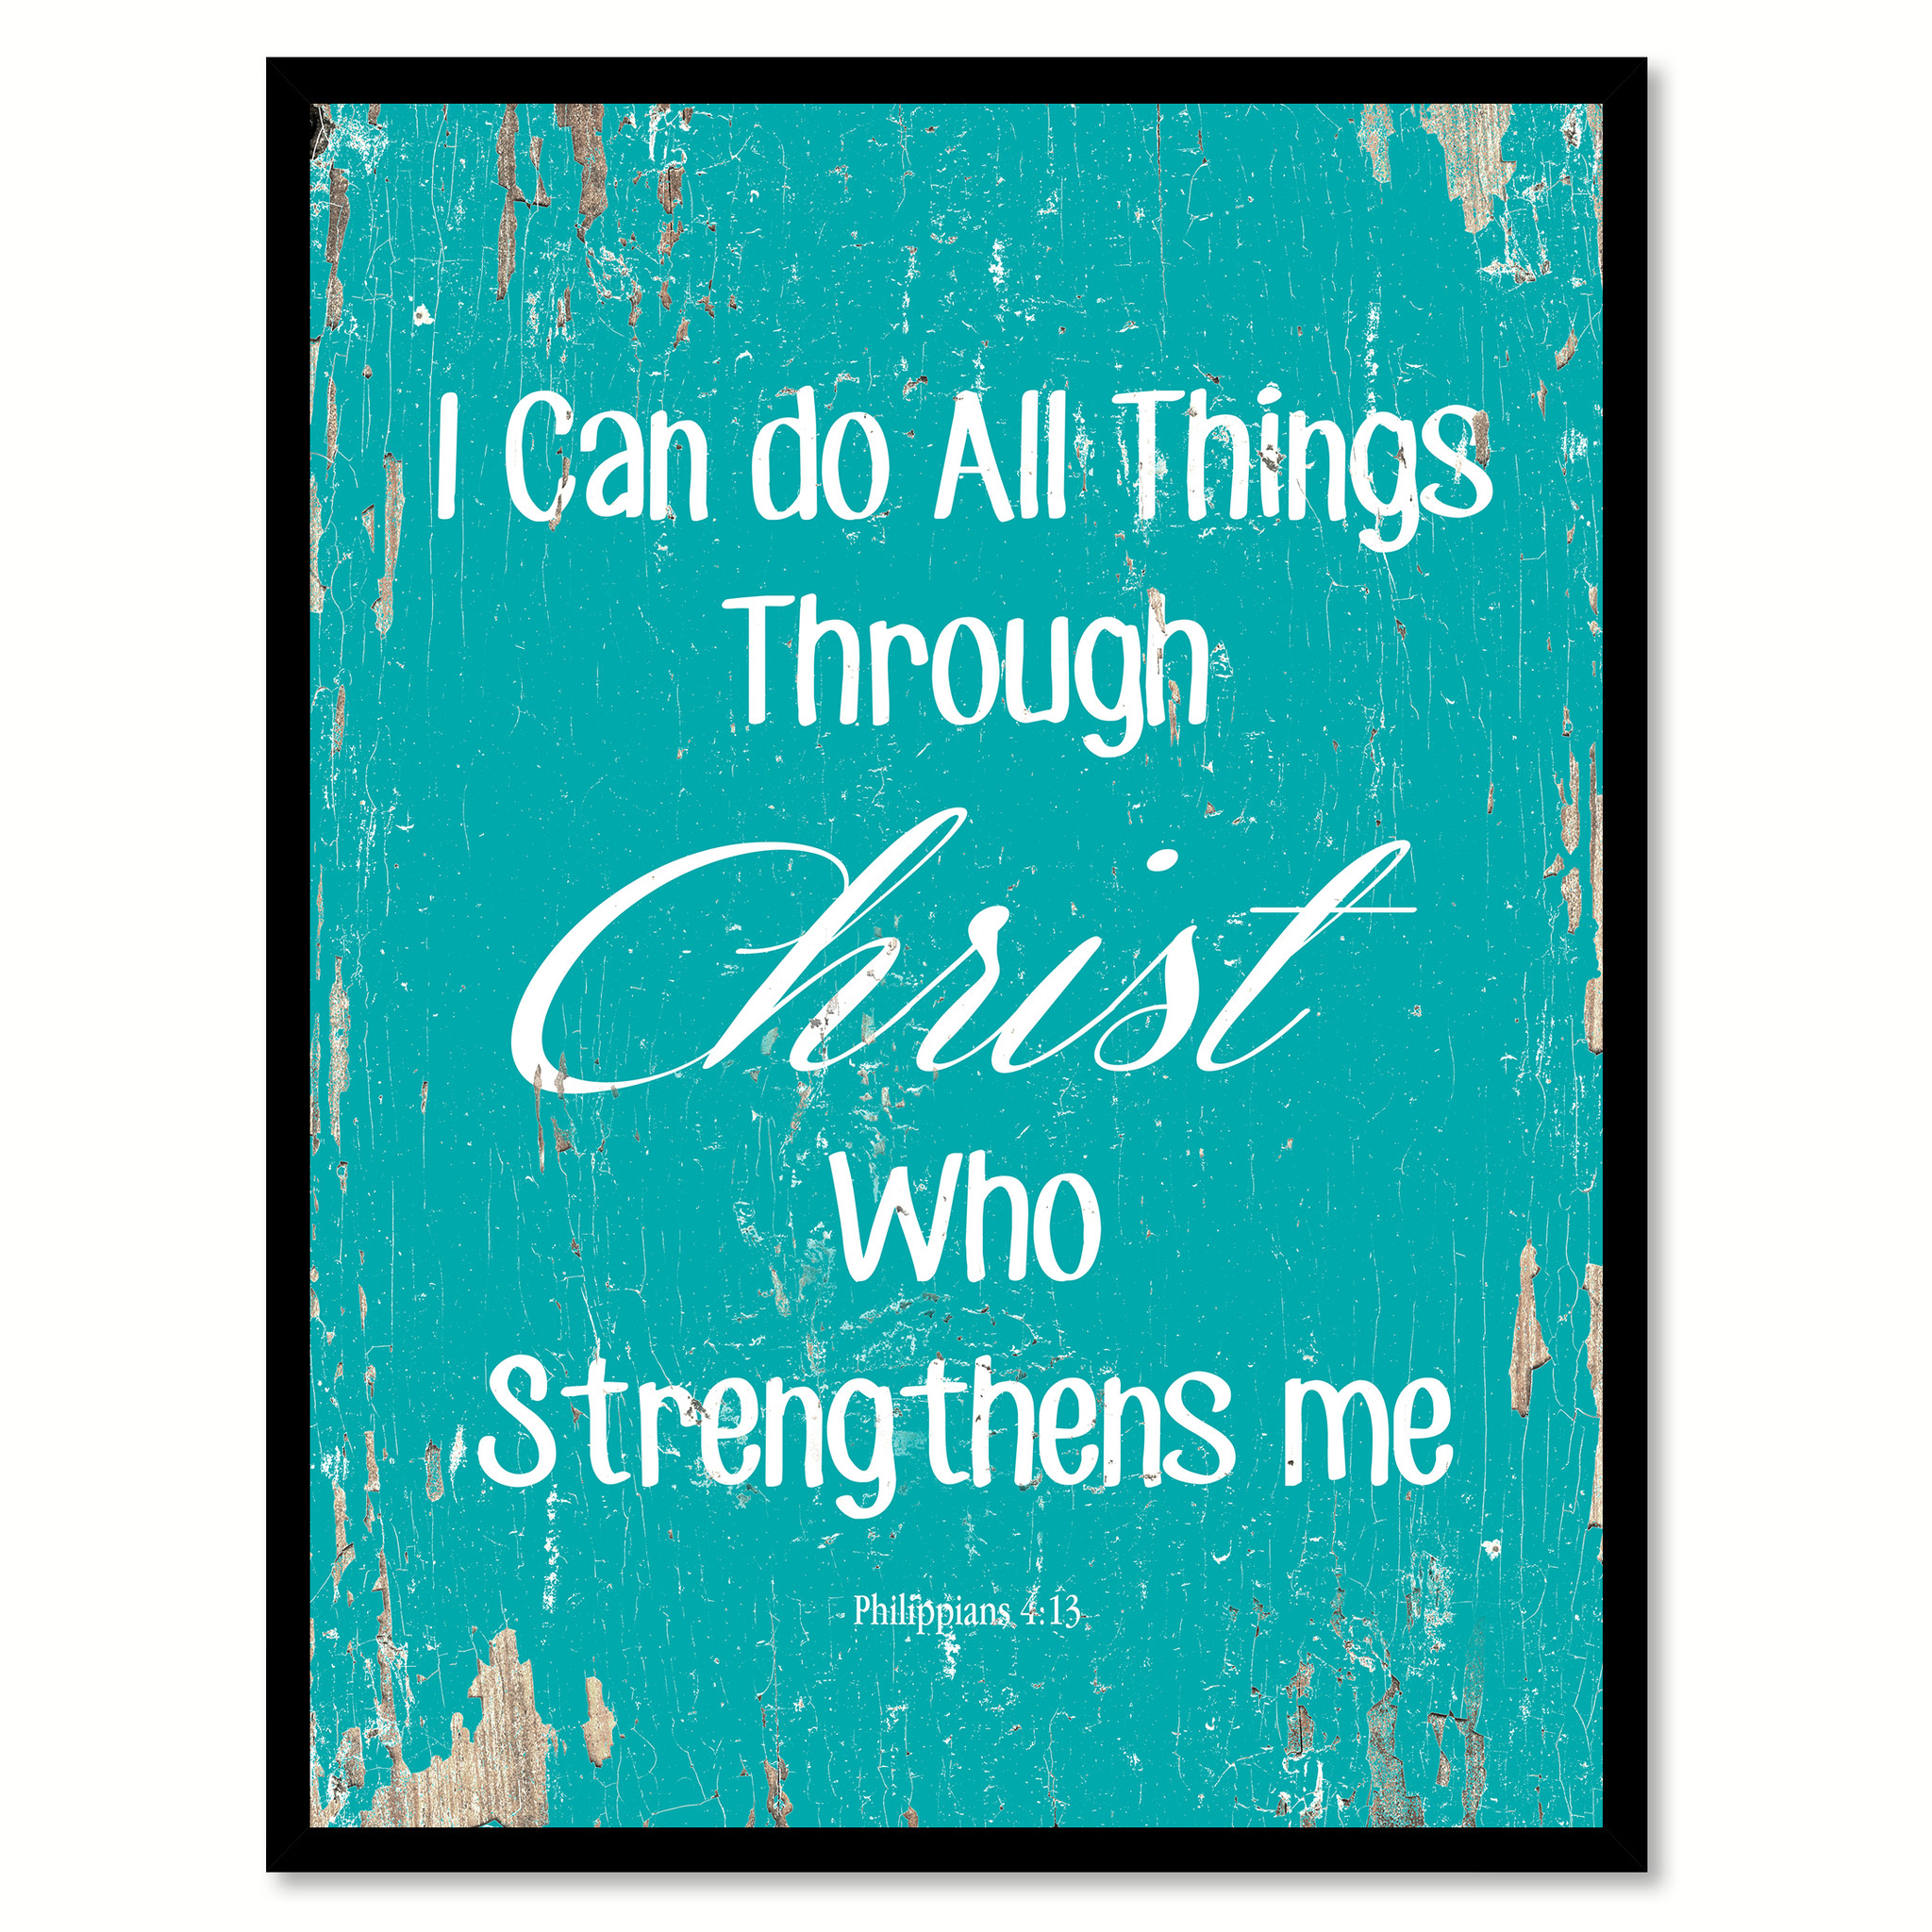 "I Can Do All Things Through Christ - Philippians 4:13 Saying Canvas Print with Picture Frame Home Decor Wall Art Gifts - 7""x9\"""